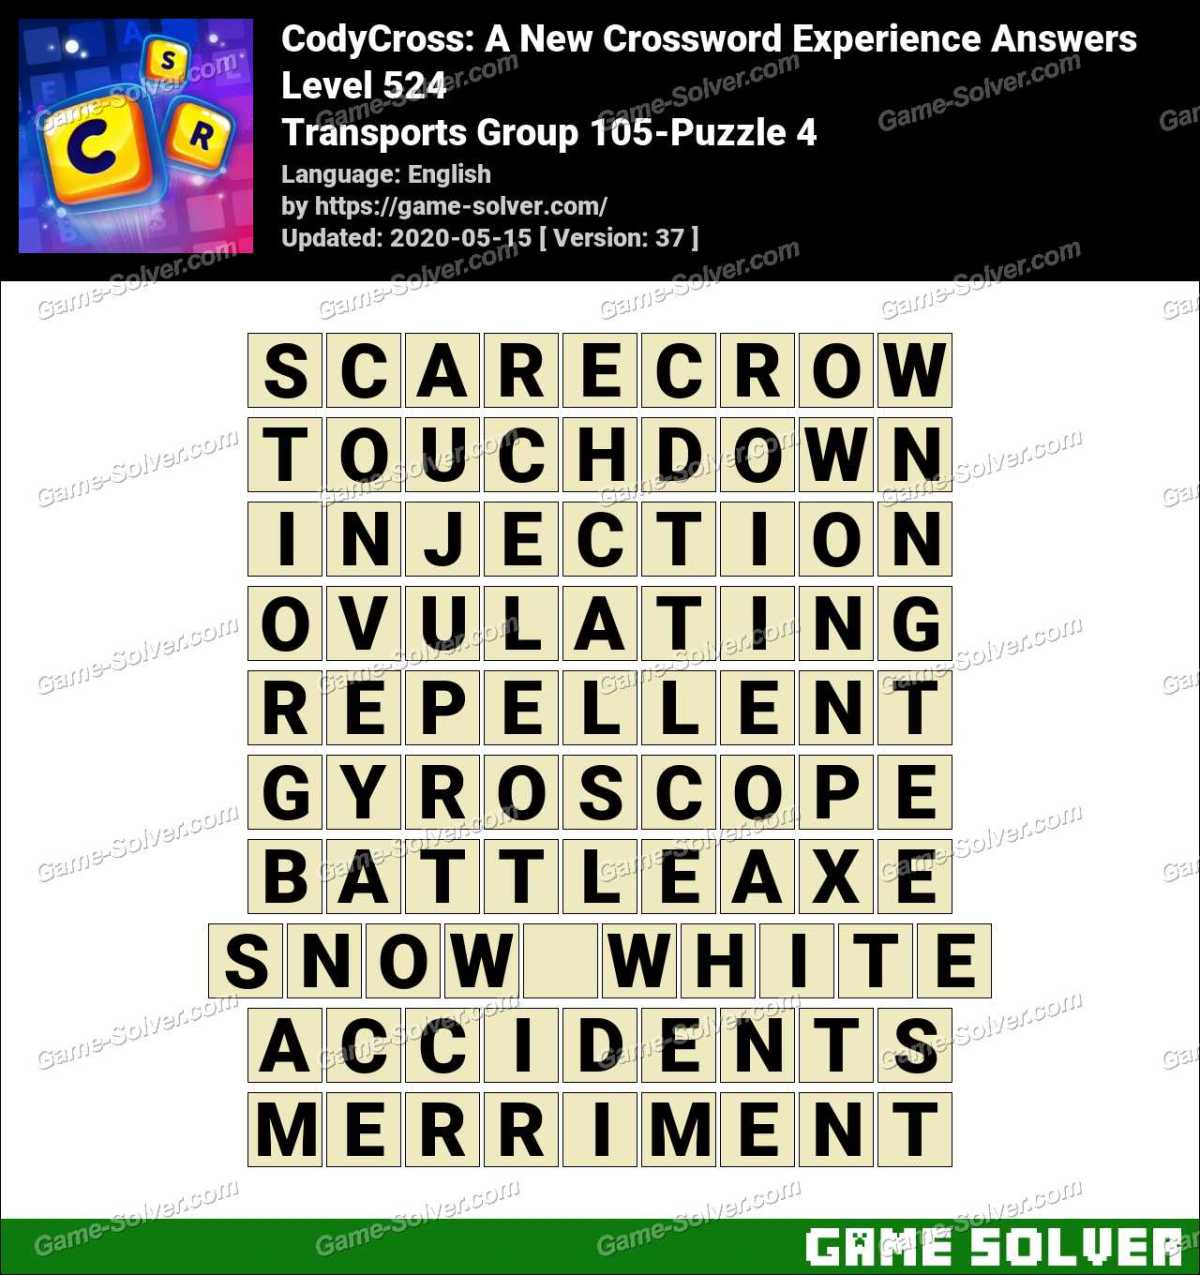 CodyCross Transports Group 105-Puzzle 4 Answers